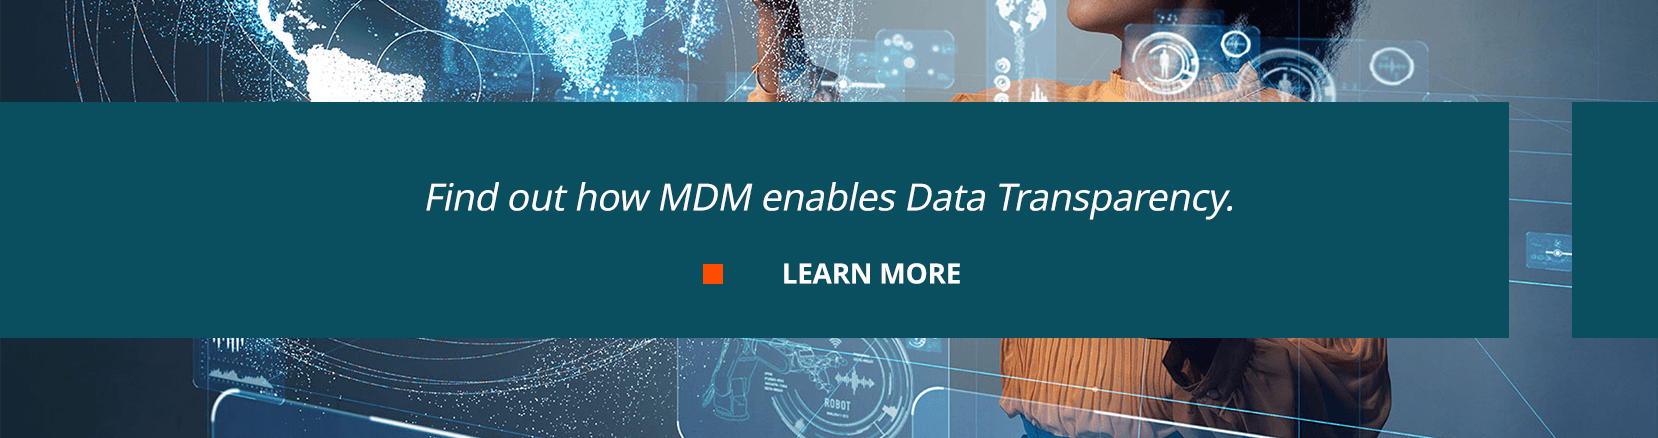 Find out how MDM enables data transparency